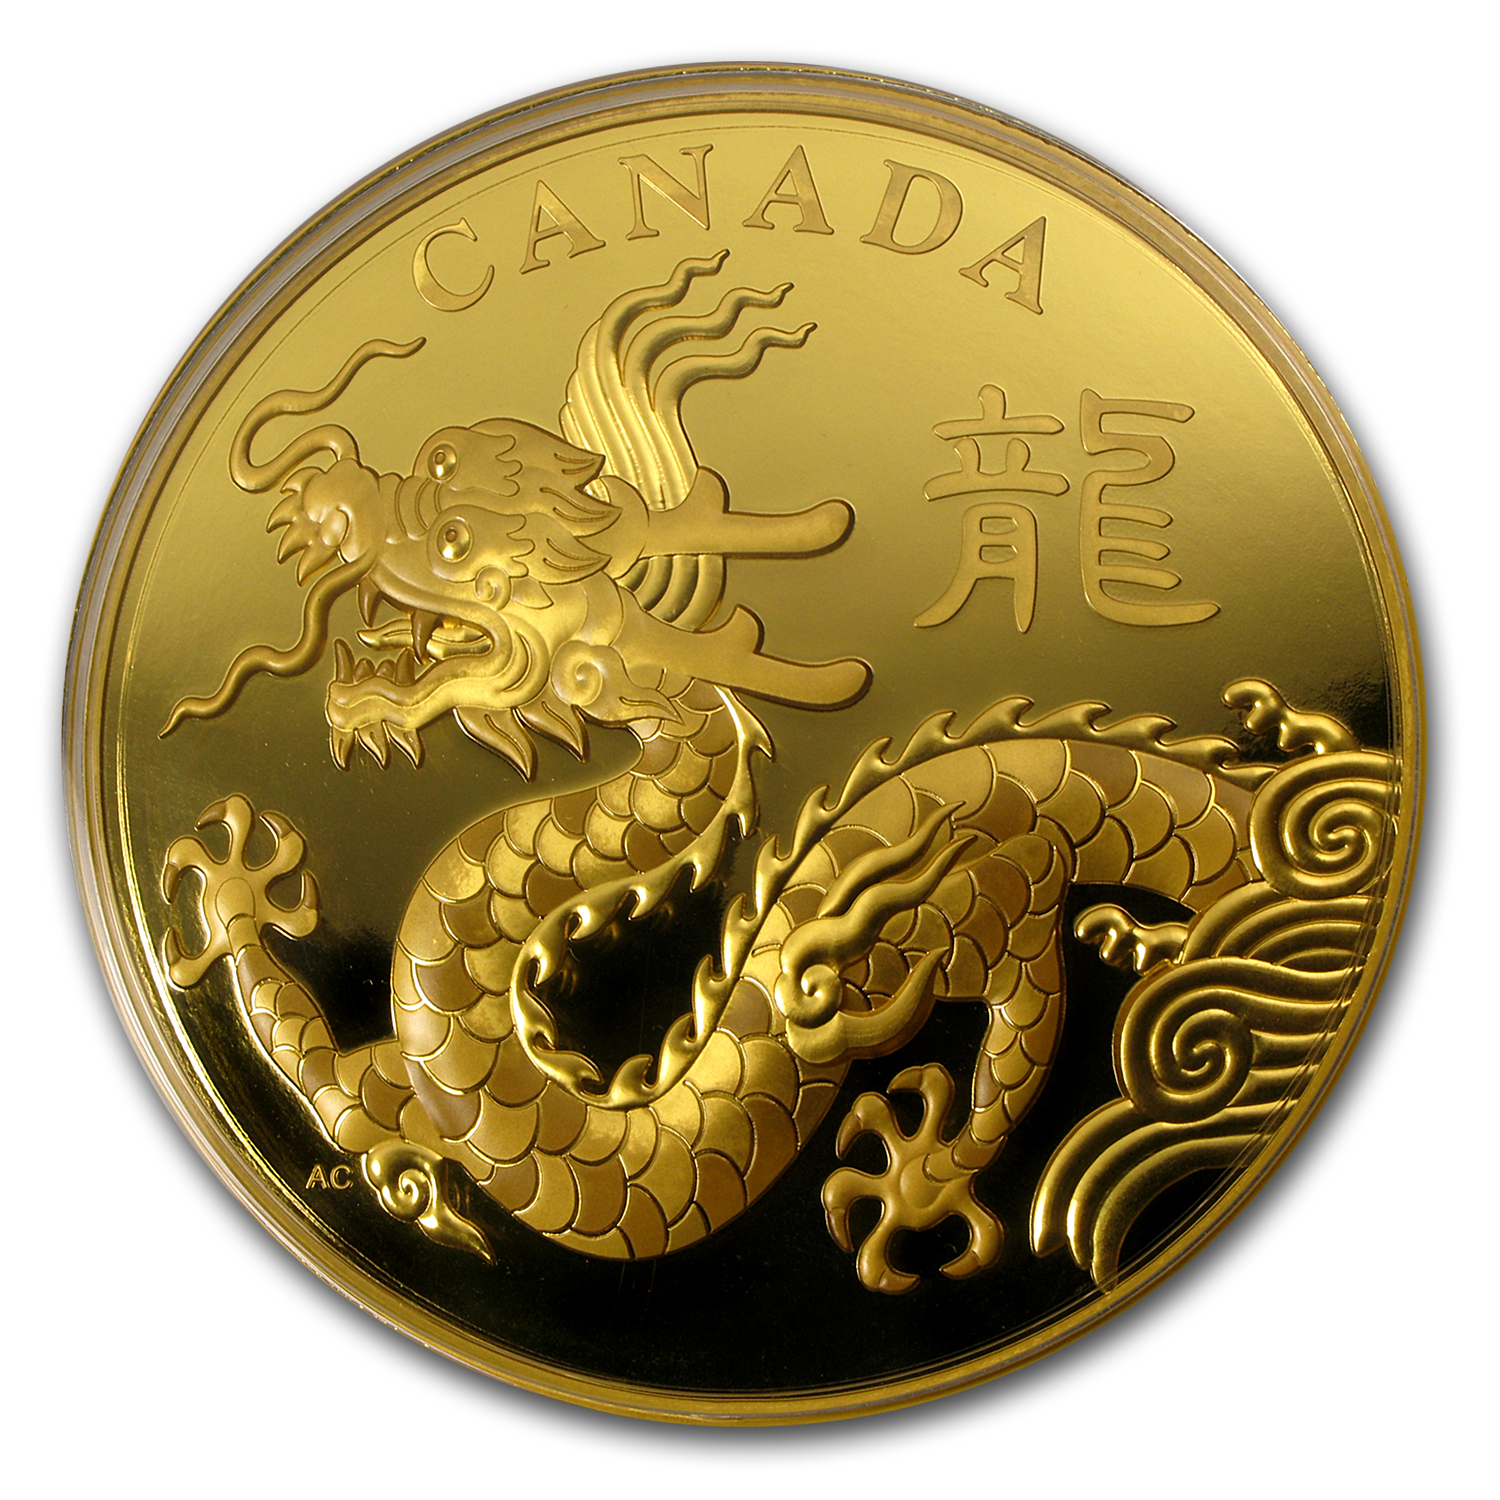 2012 Gold 1 Kilo Canadian $2,500 Year of the Dragon Proof